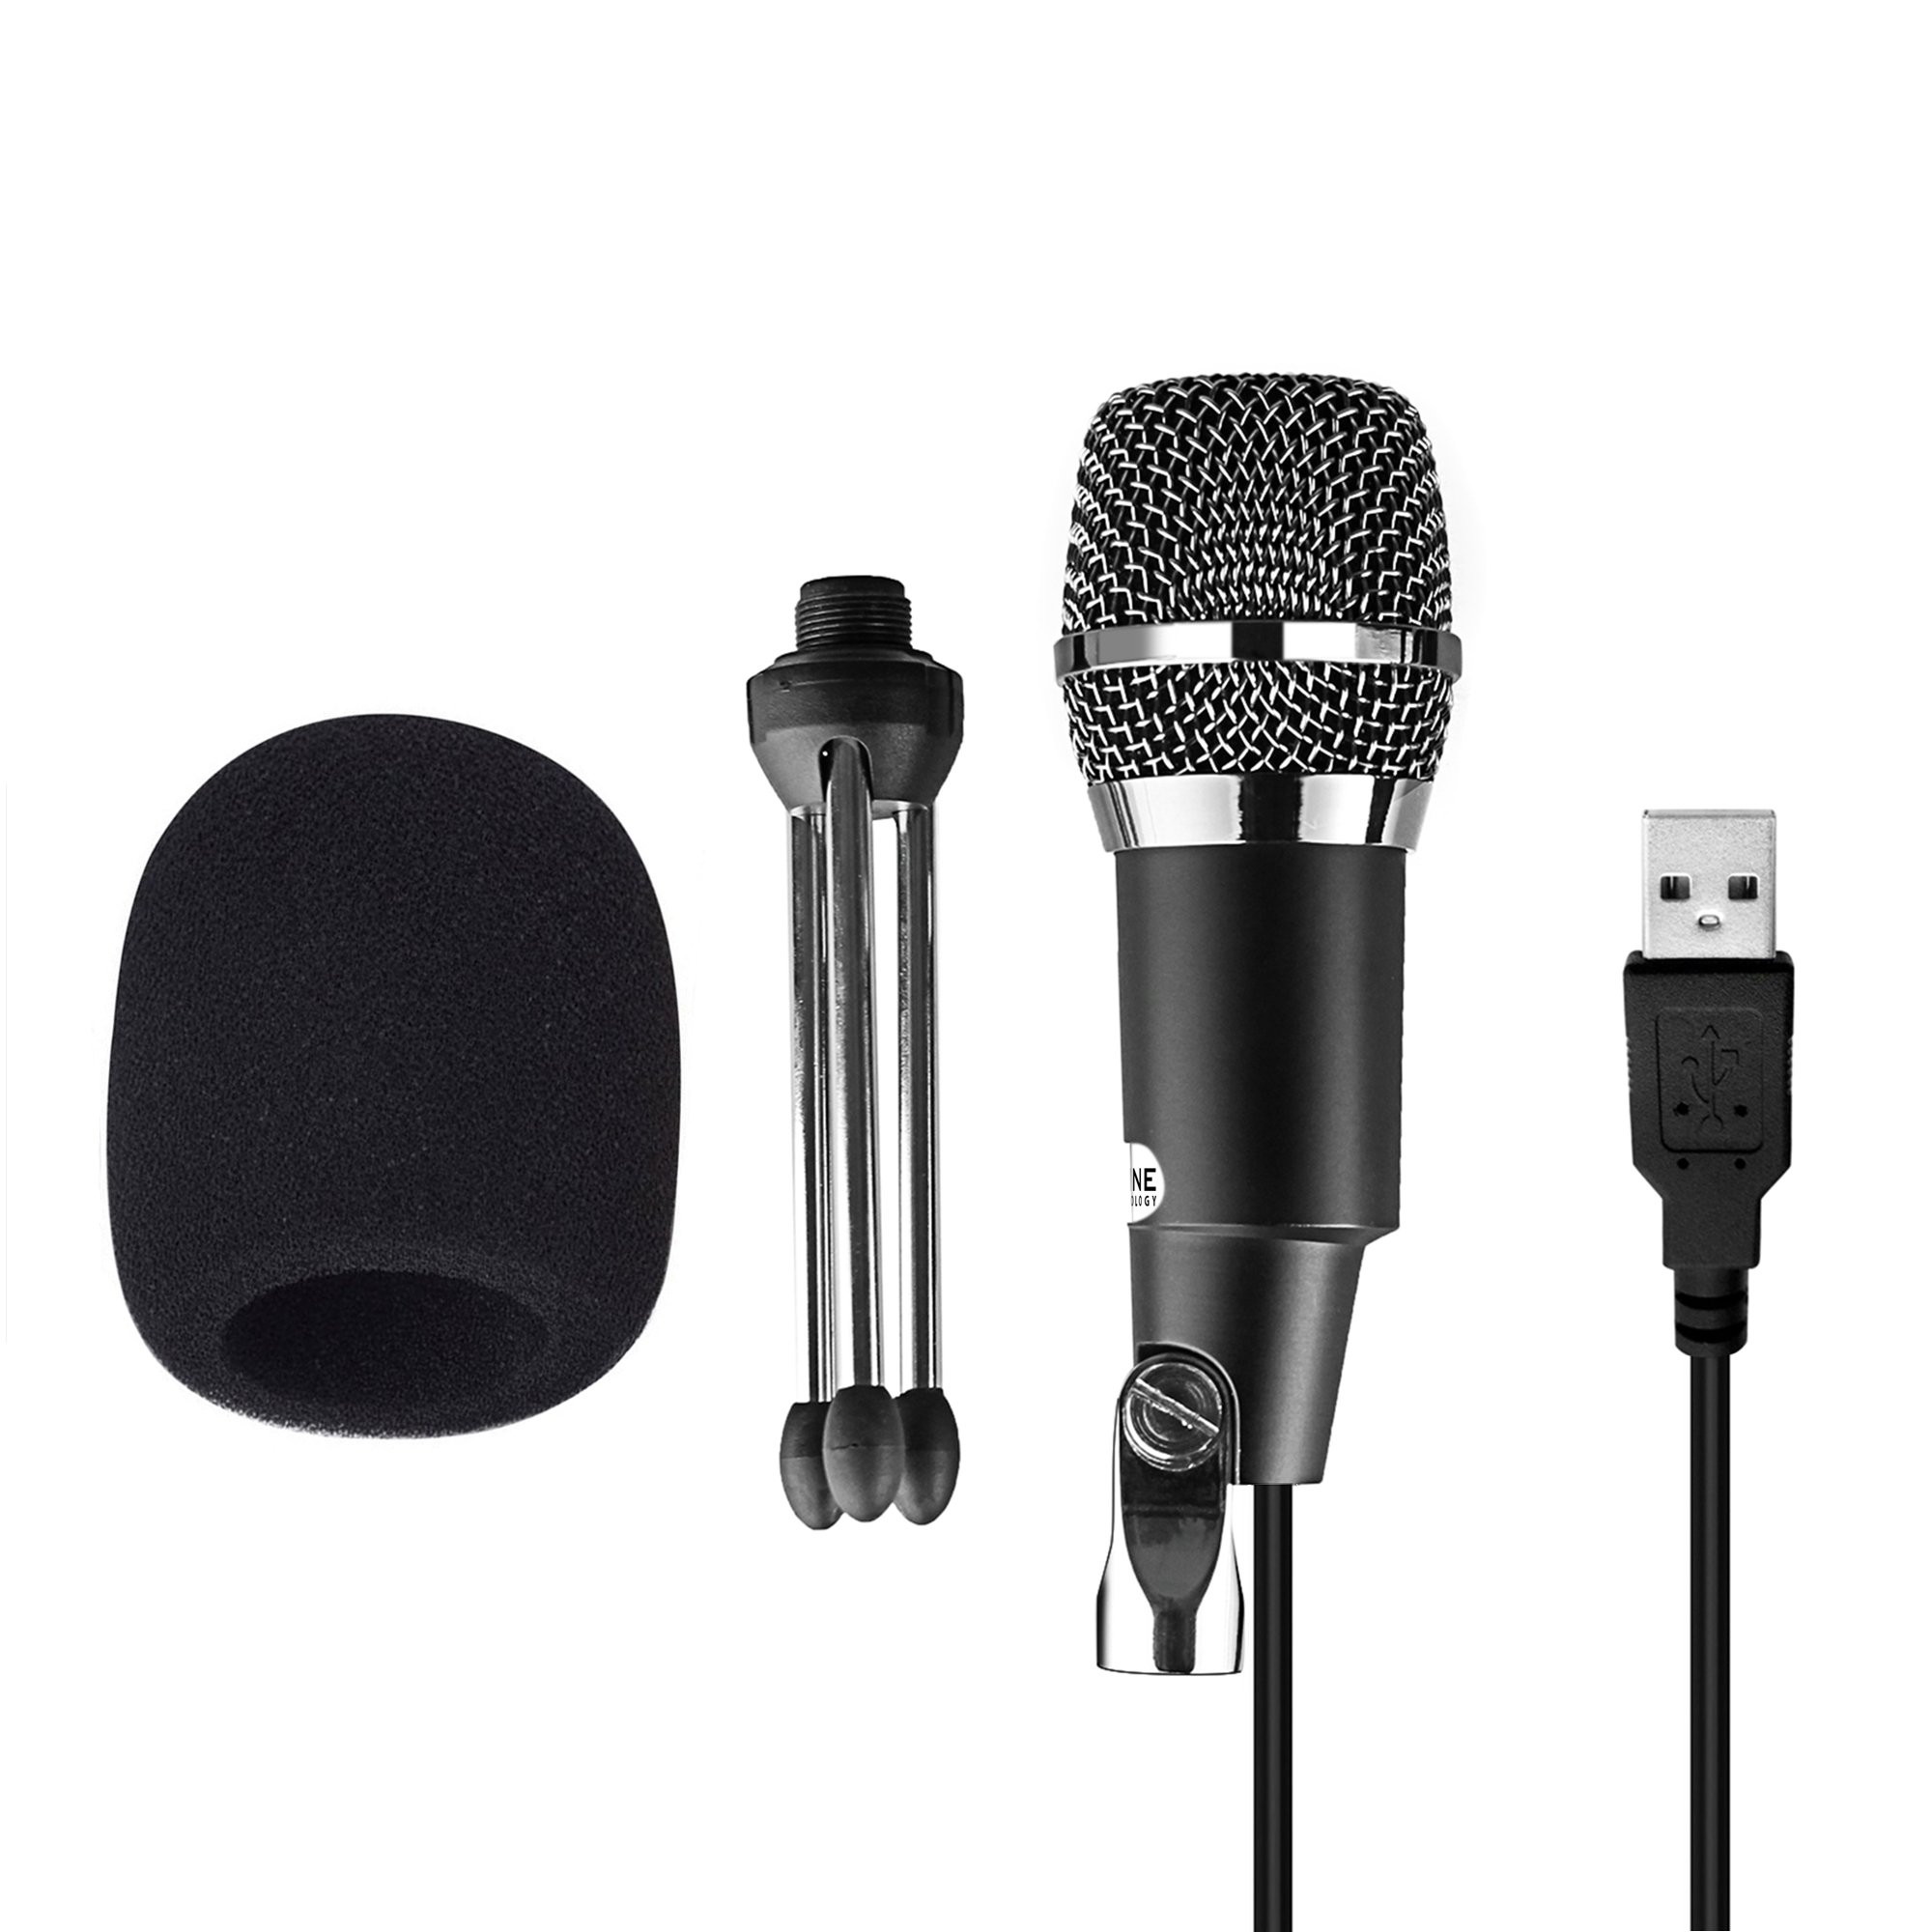 FIFINE TECHNOLOGY USB Microphone,Fifine Plug &Play Home Studio USB Condenser Microphone for Skype, Recordings for YouTube, Google Voice Search, Games(Windows/Mac)-K668 by FIFINE TECHNOLOGY (Image #4)